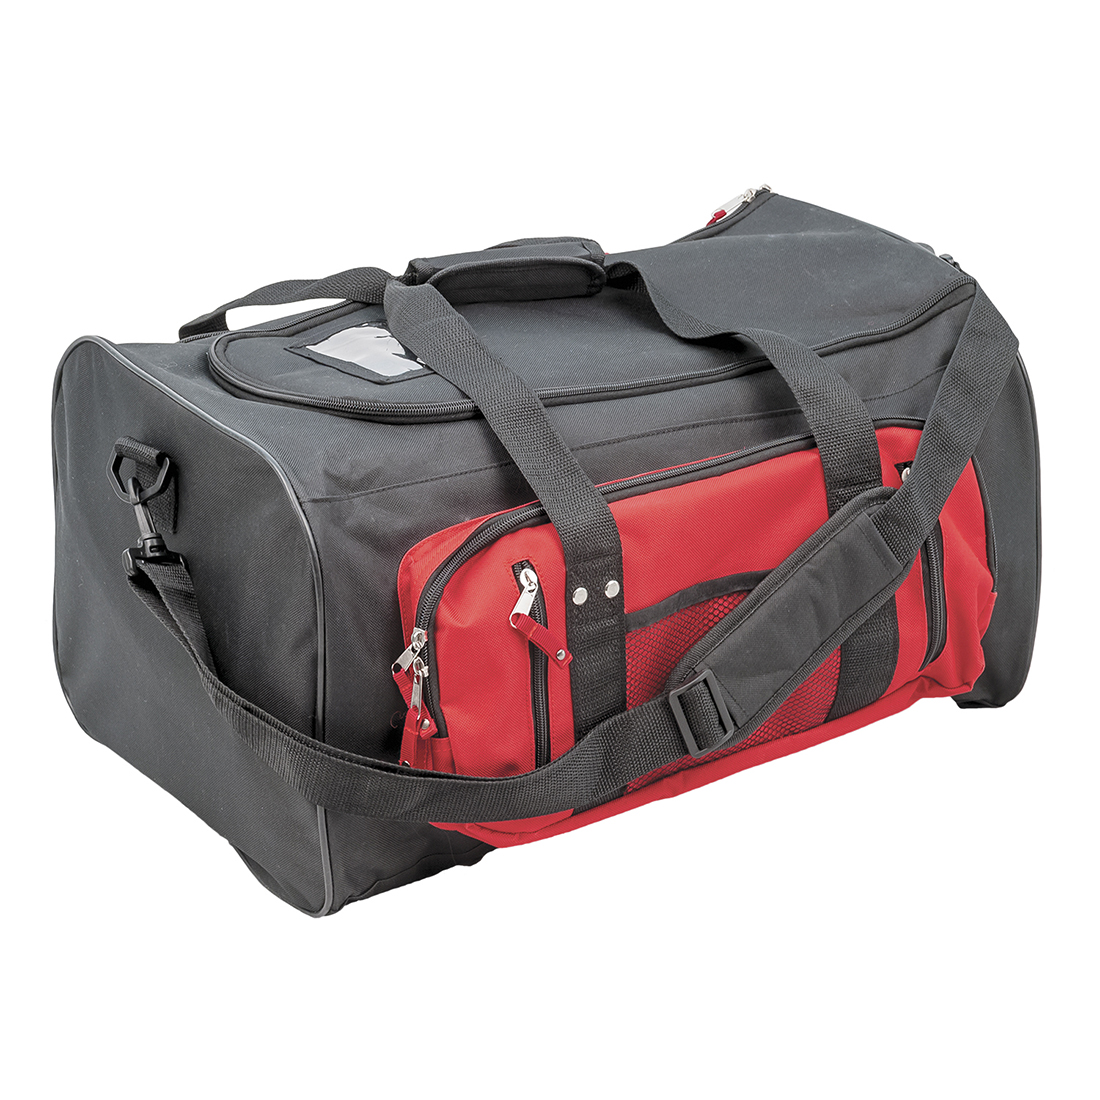 Portwest The Holdall Kitbag - B901